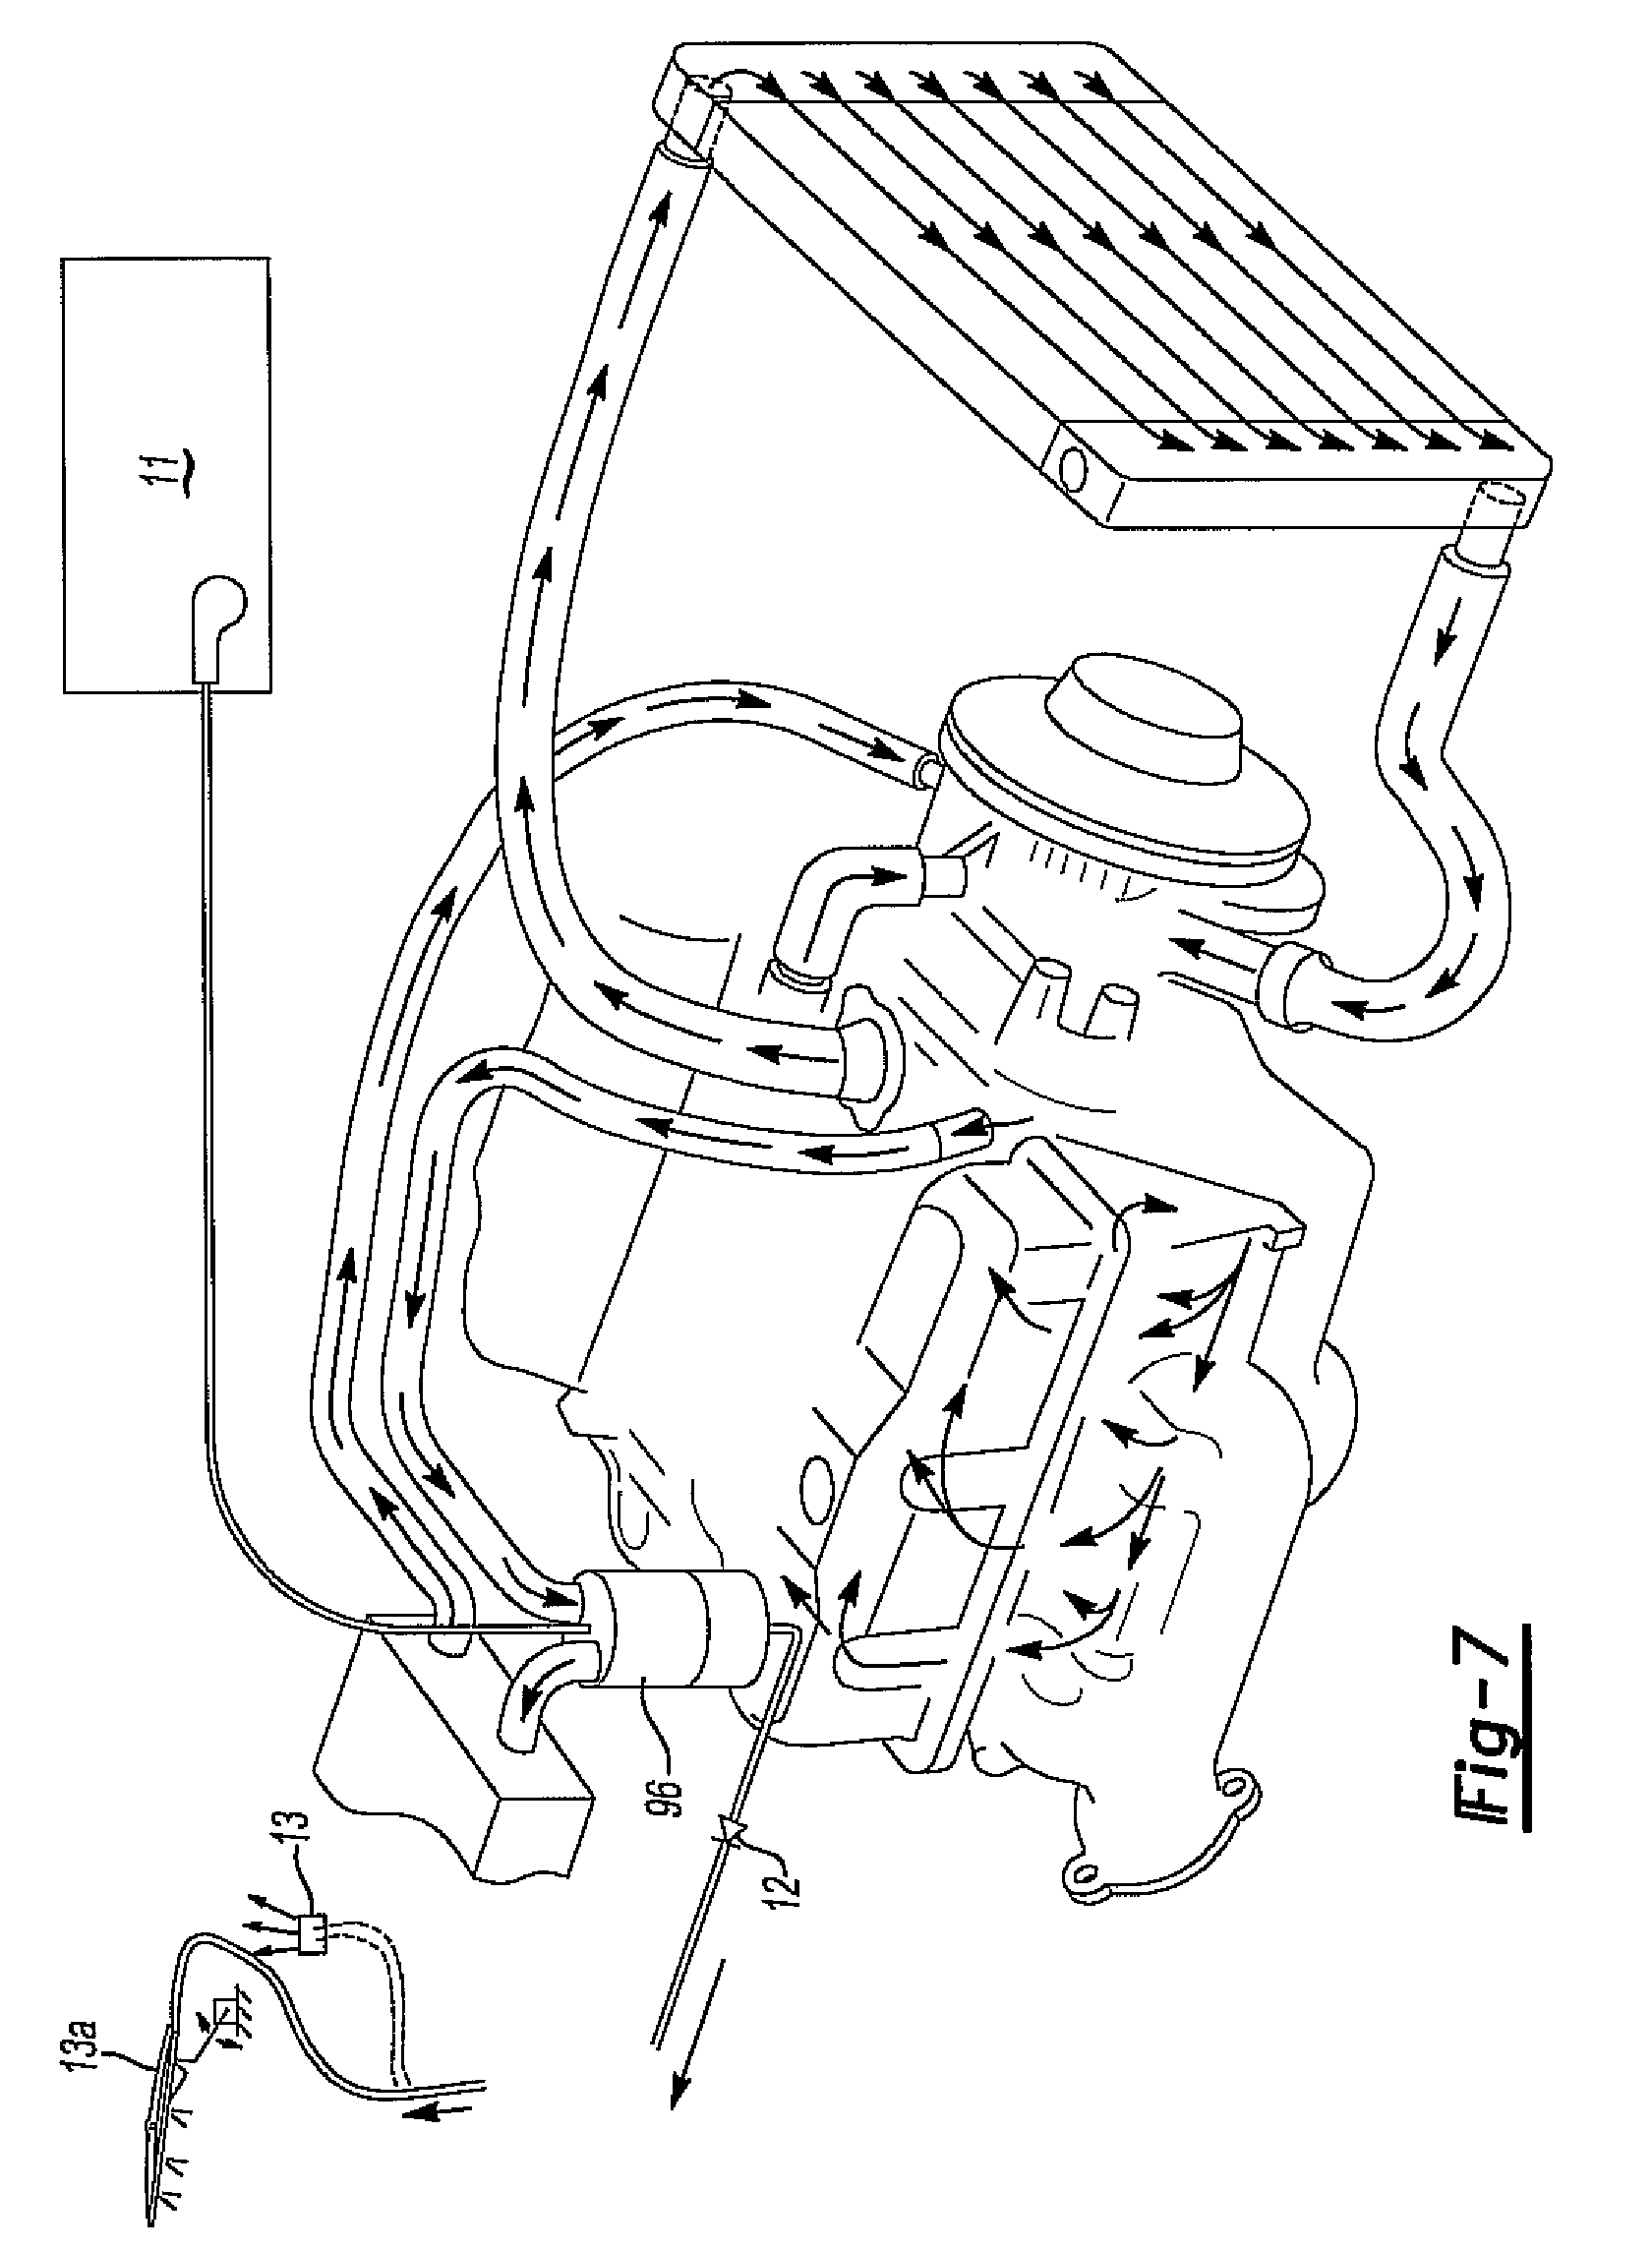 1954 Ford Ignition Wiring Diagram 8n Harness Get Free Image